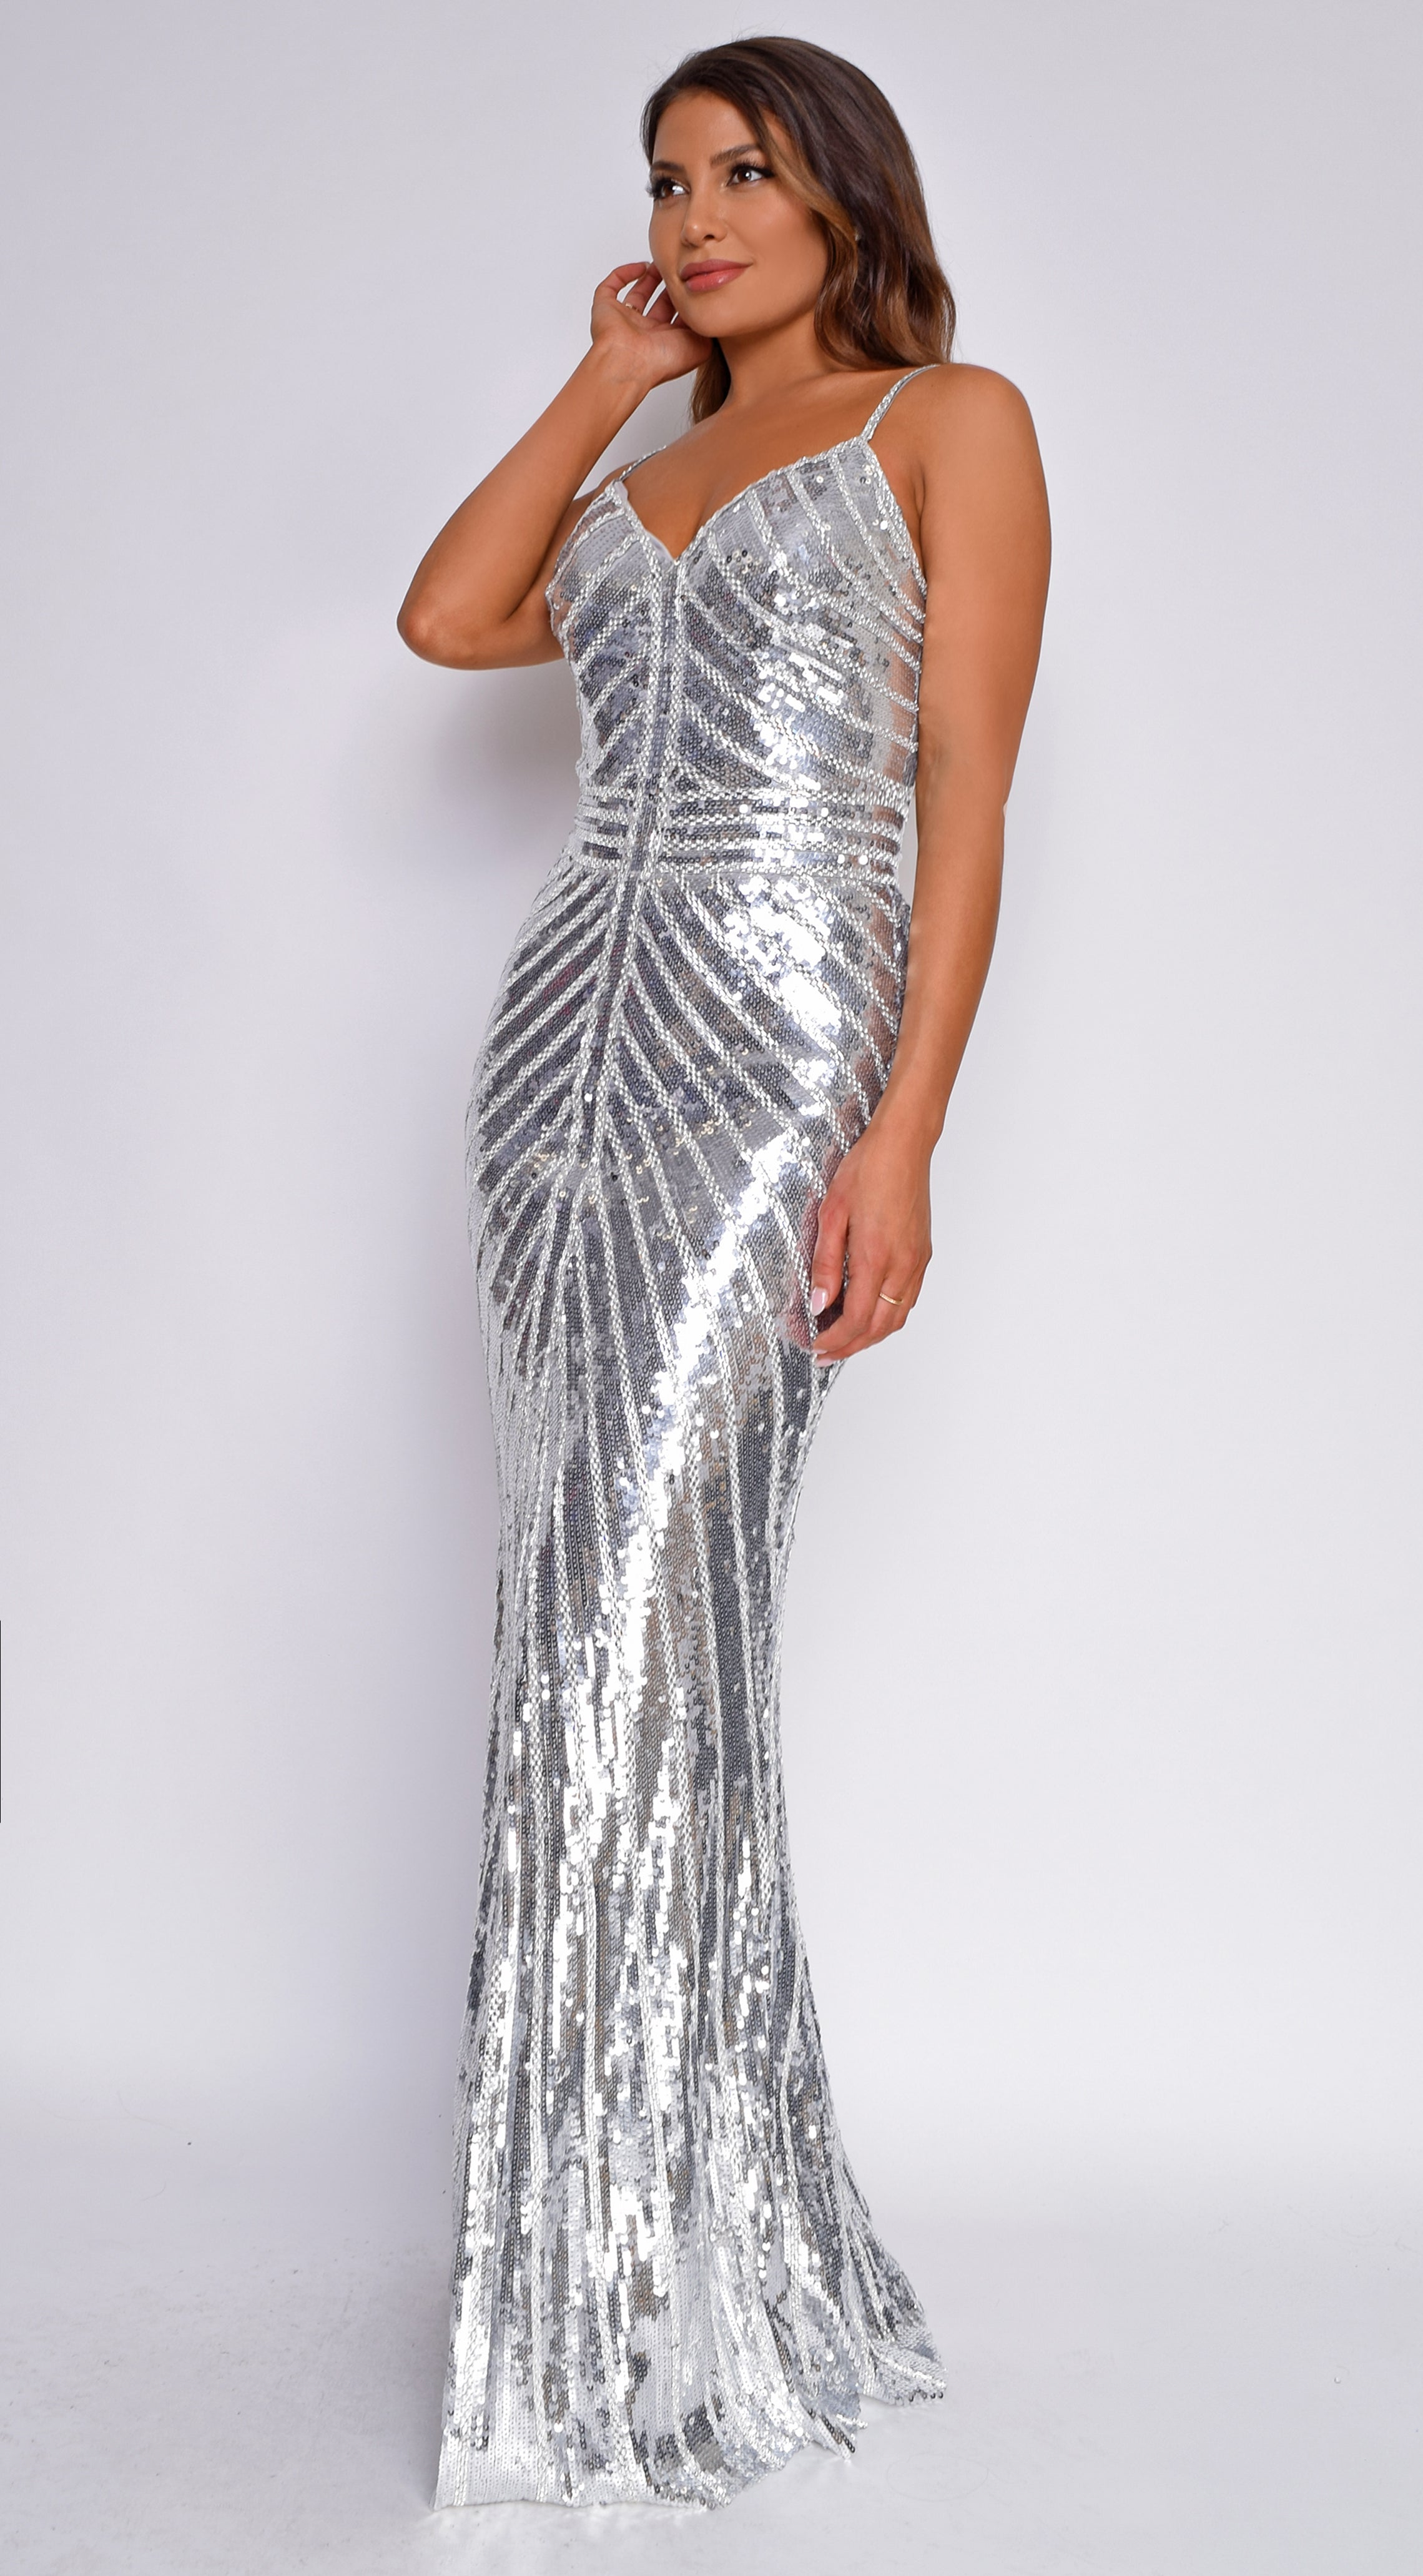 Gelina Silver Sequin Beaded Gown